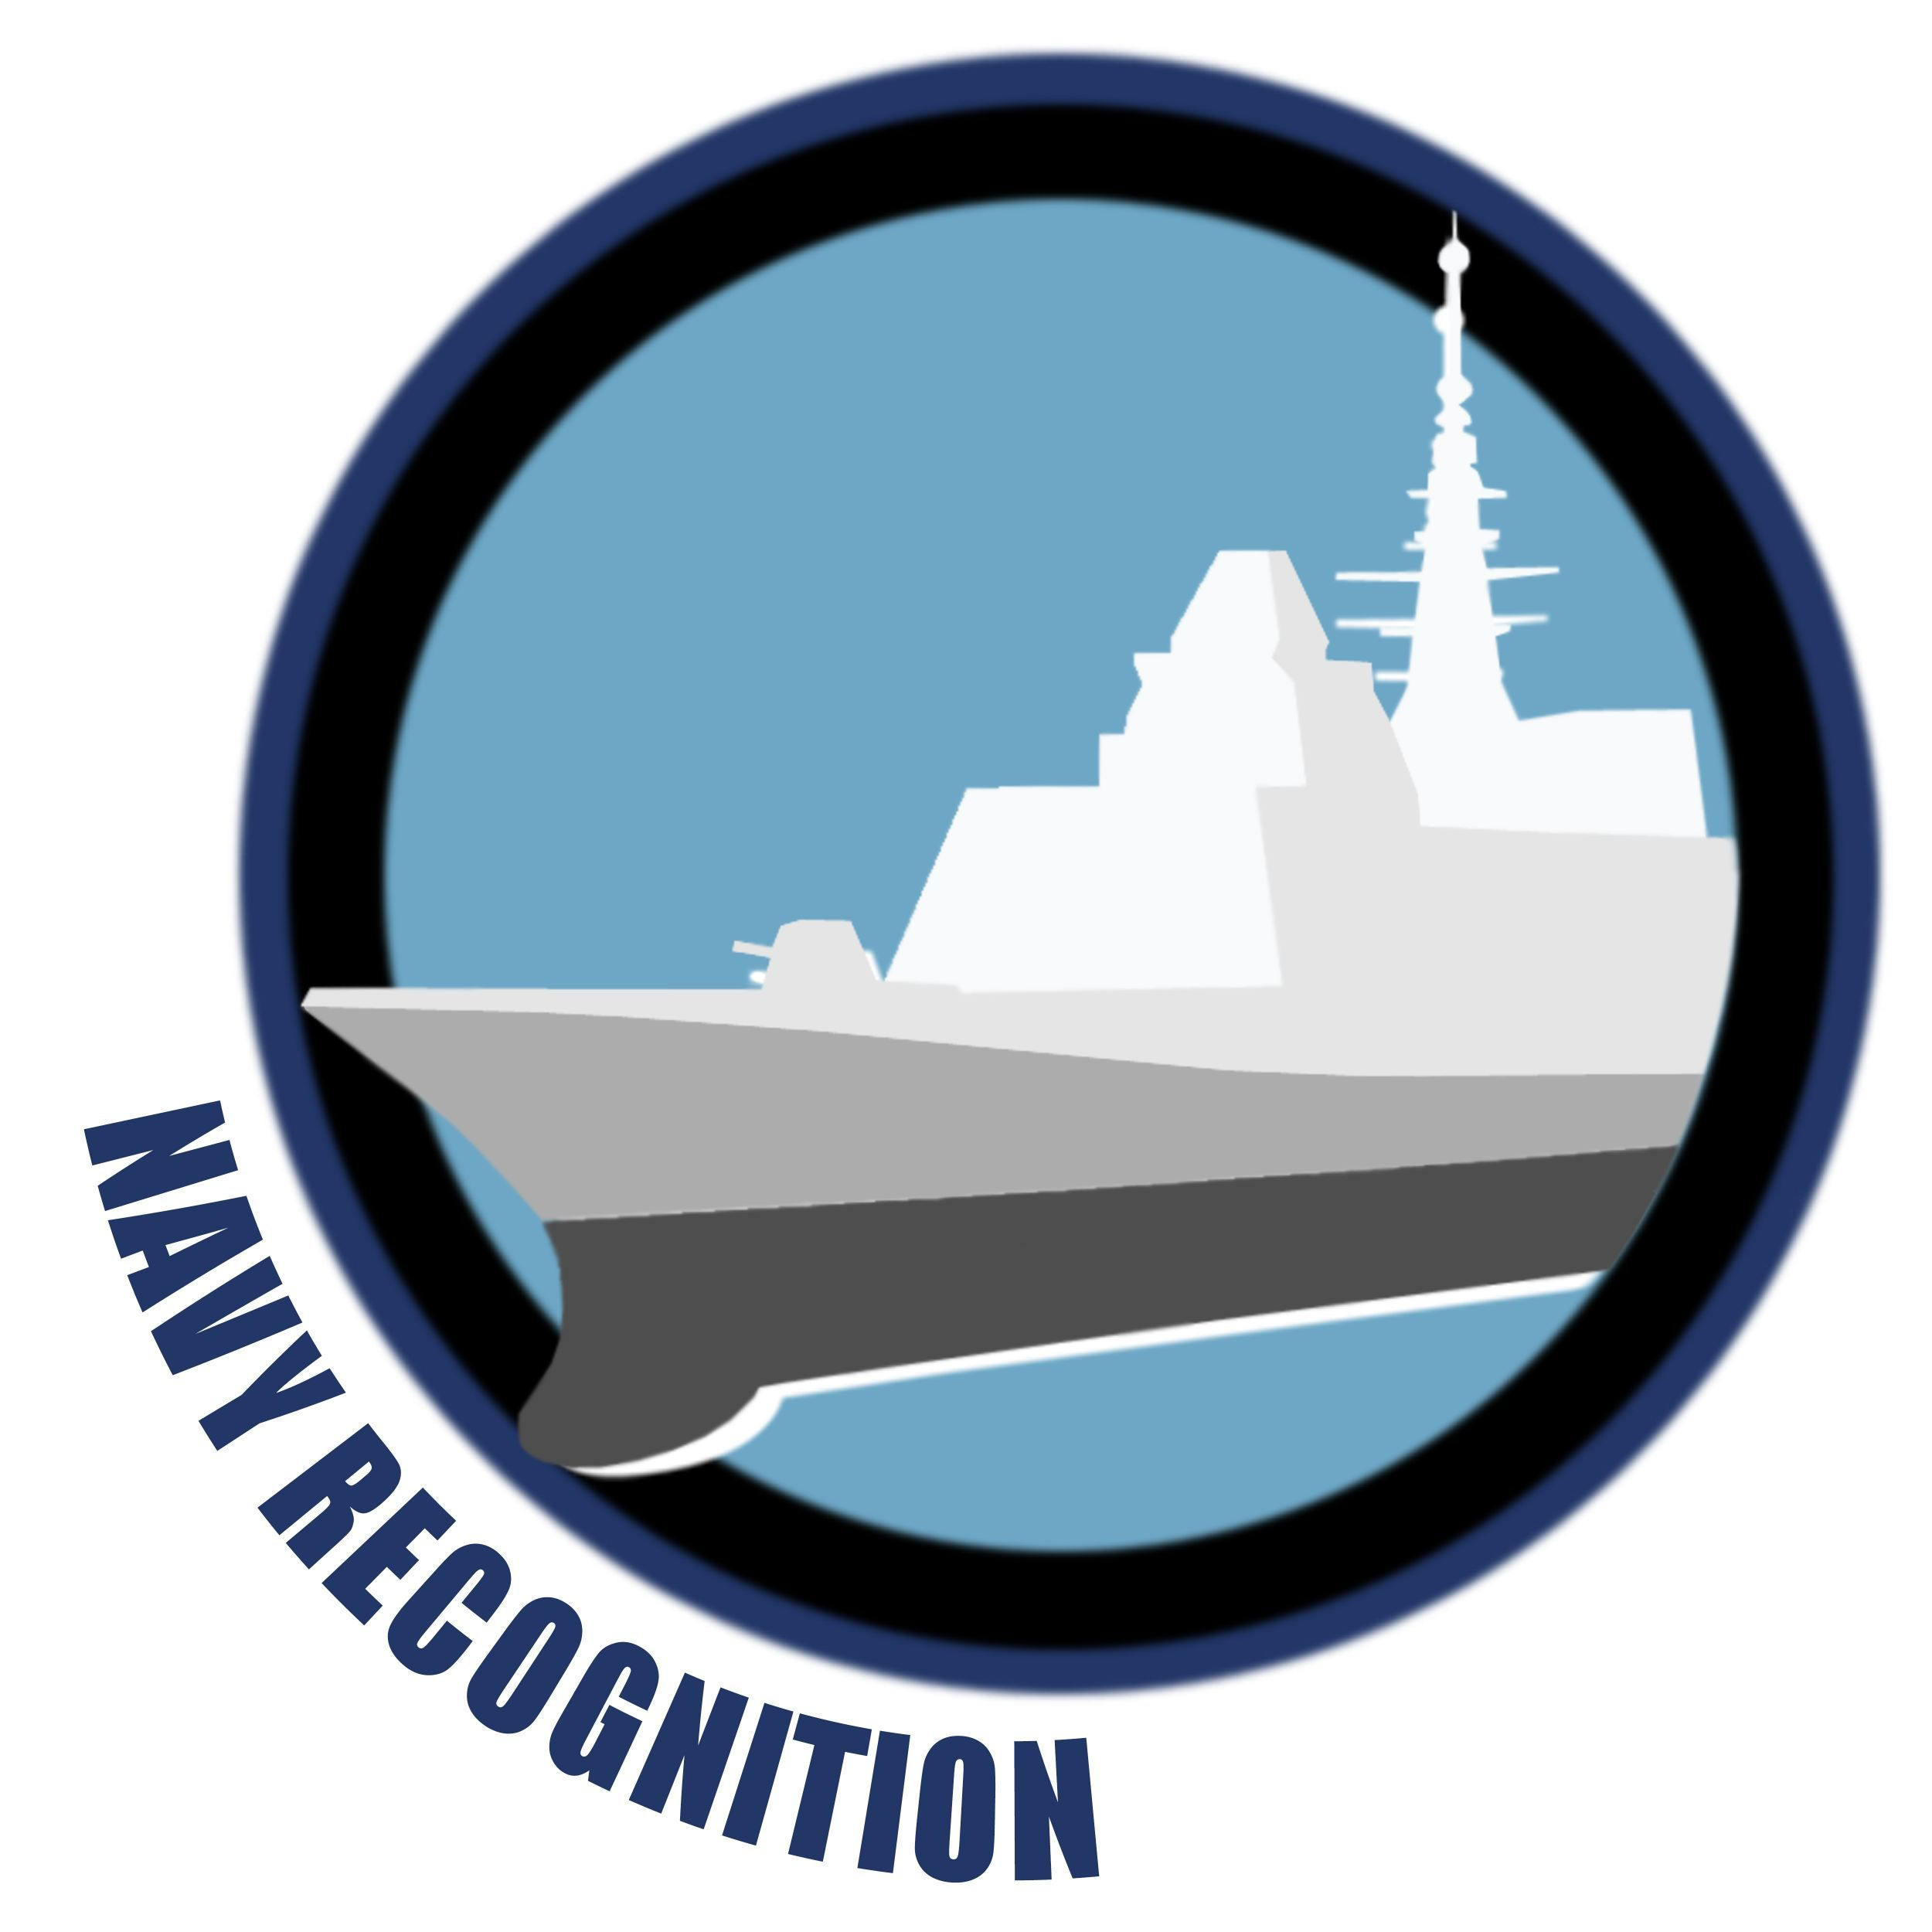 Navy Recognition